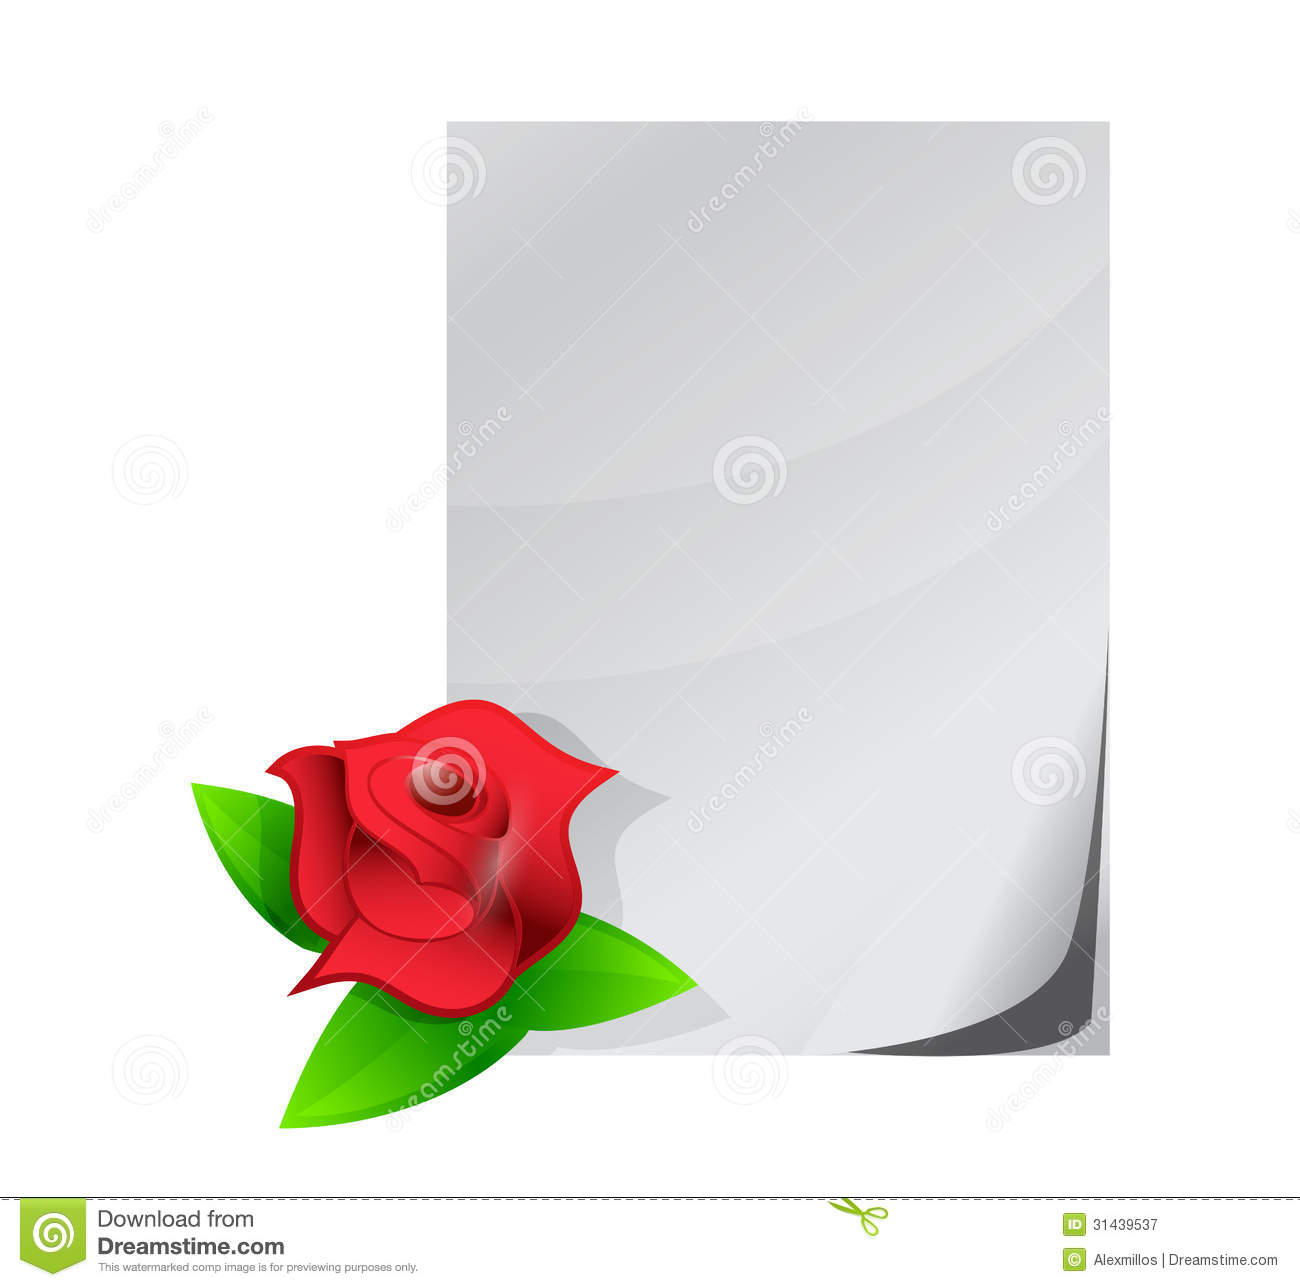 Red Rose Love Letter Illustration Design Royalty Free